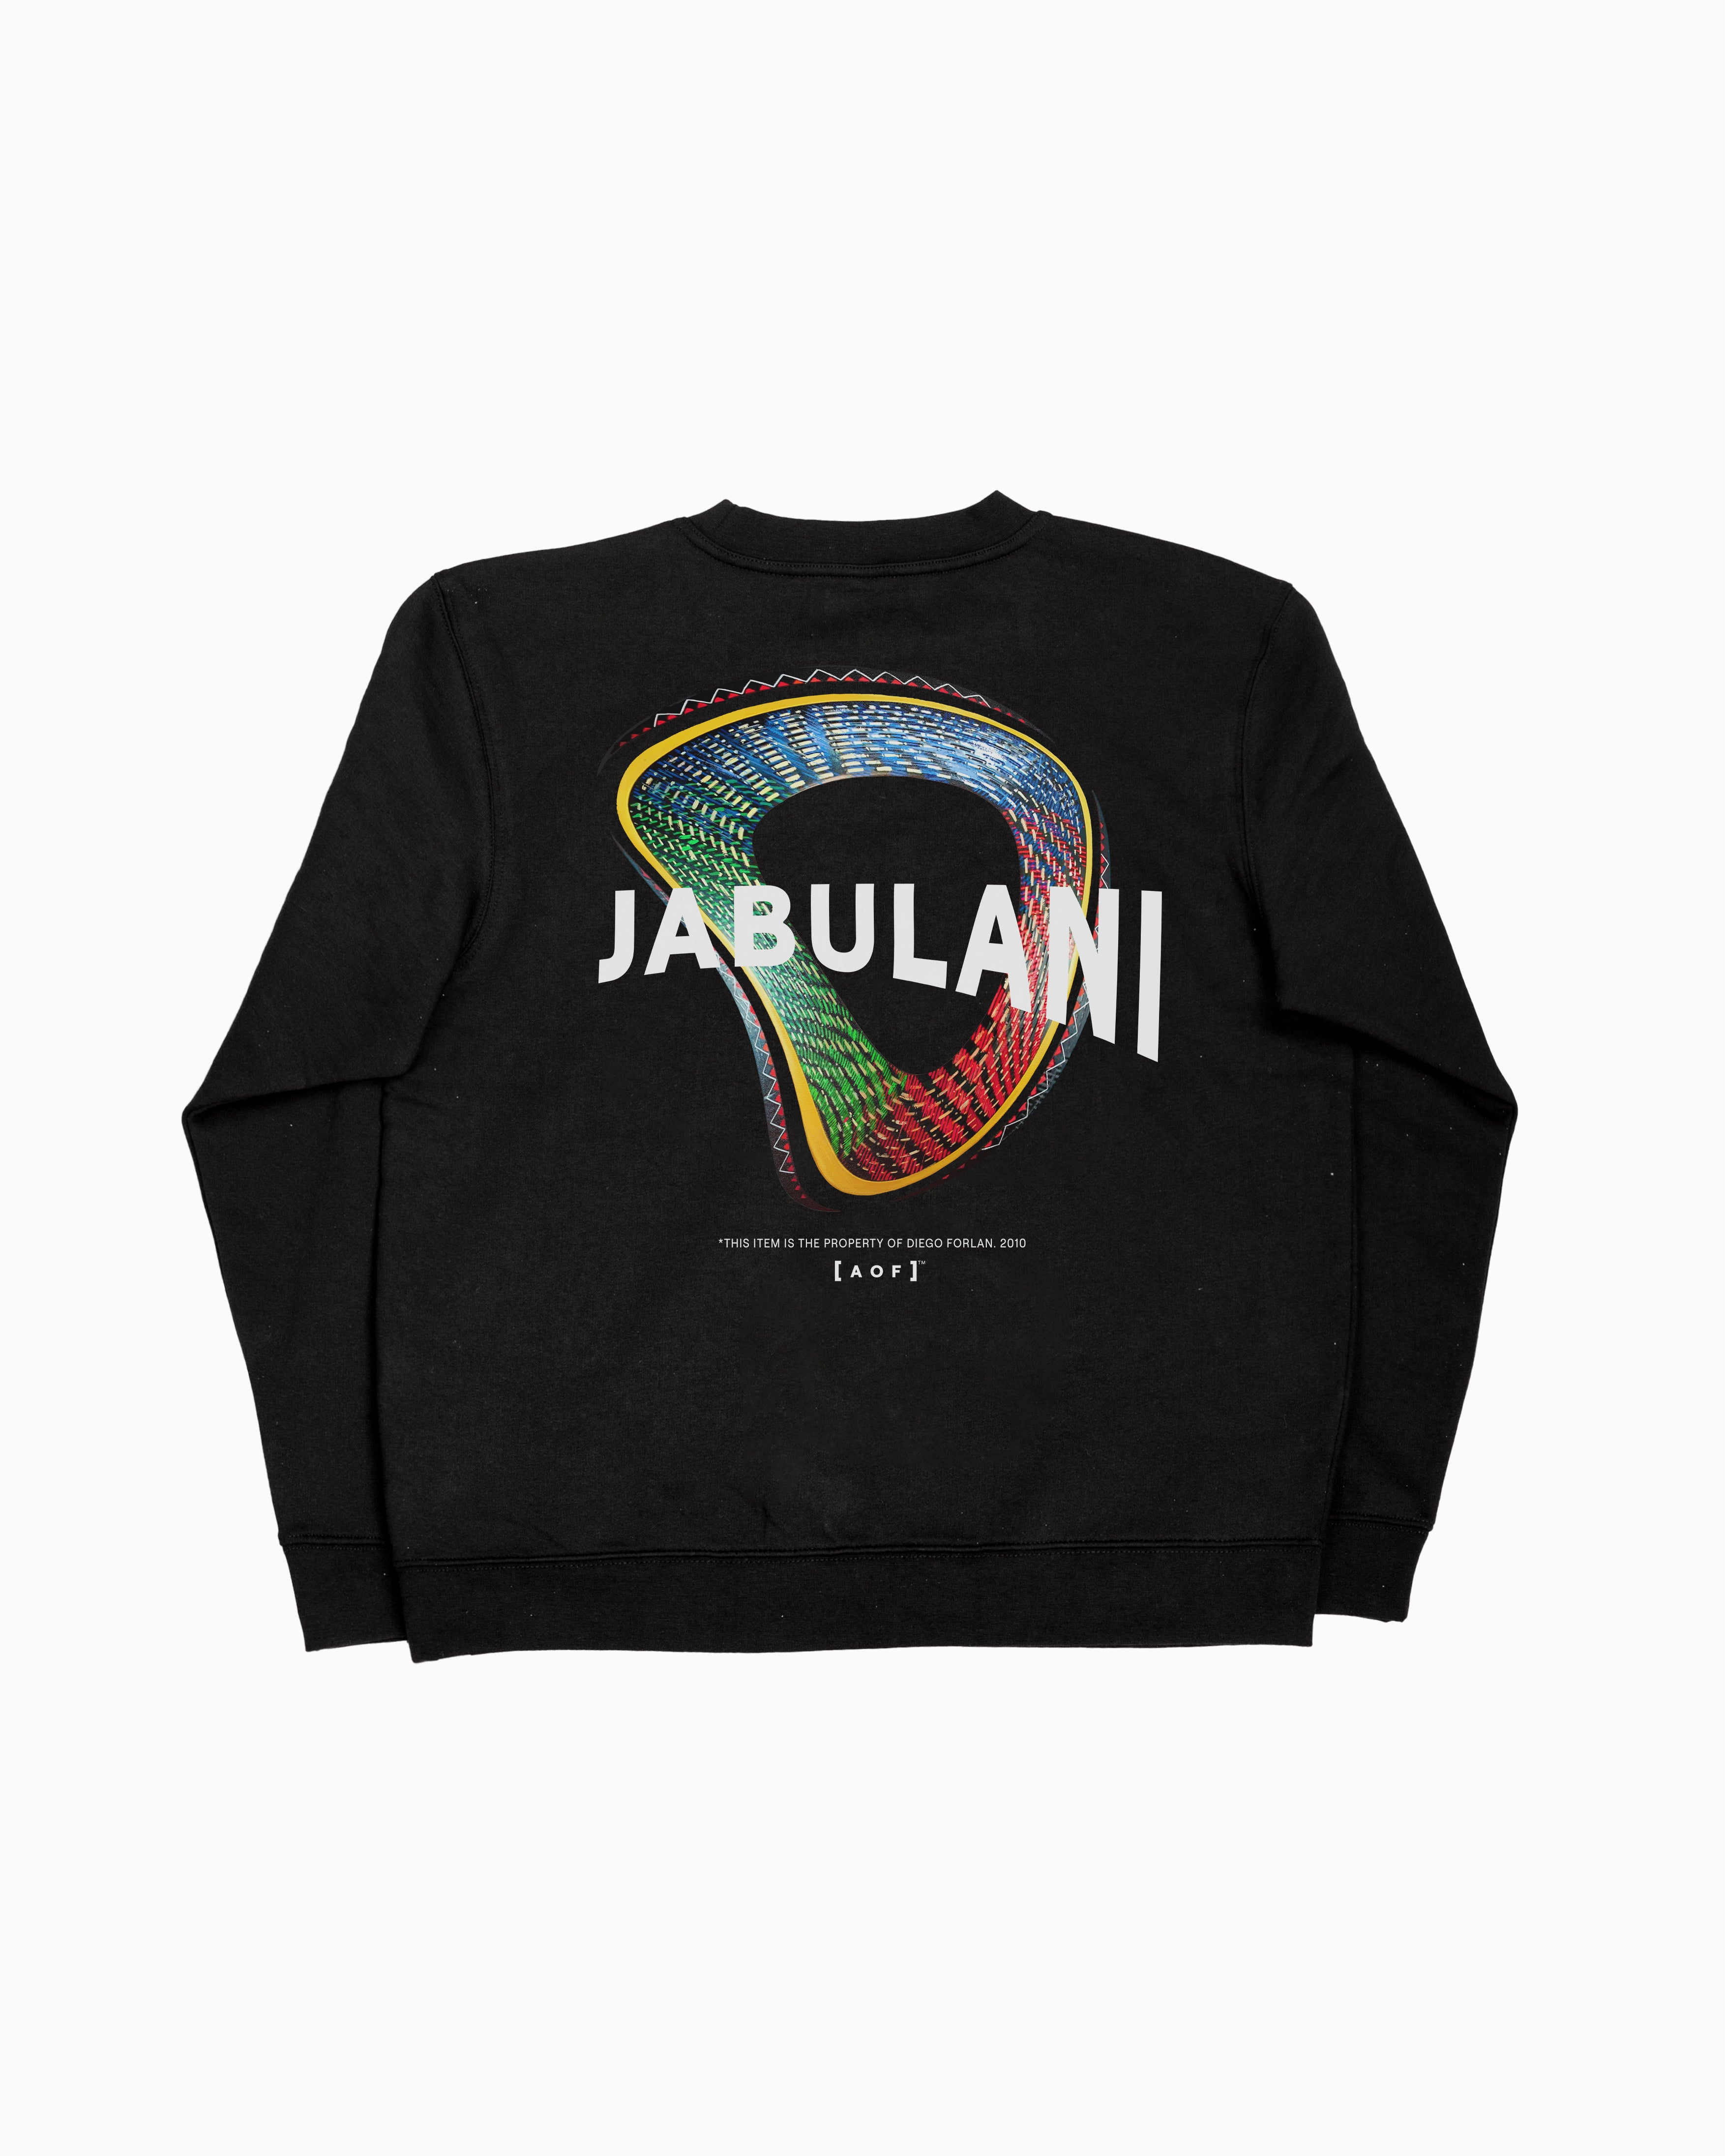 Jabulani - Tee or Sweat